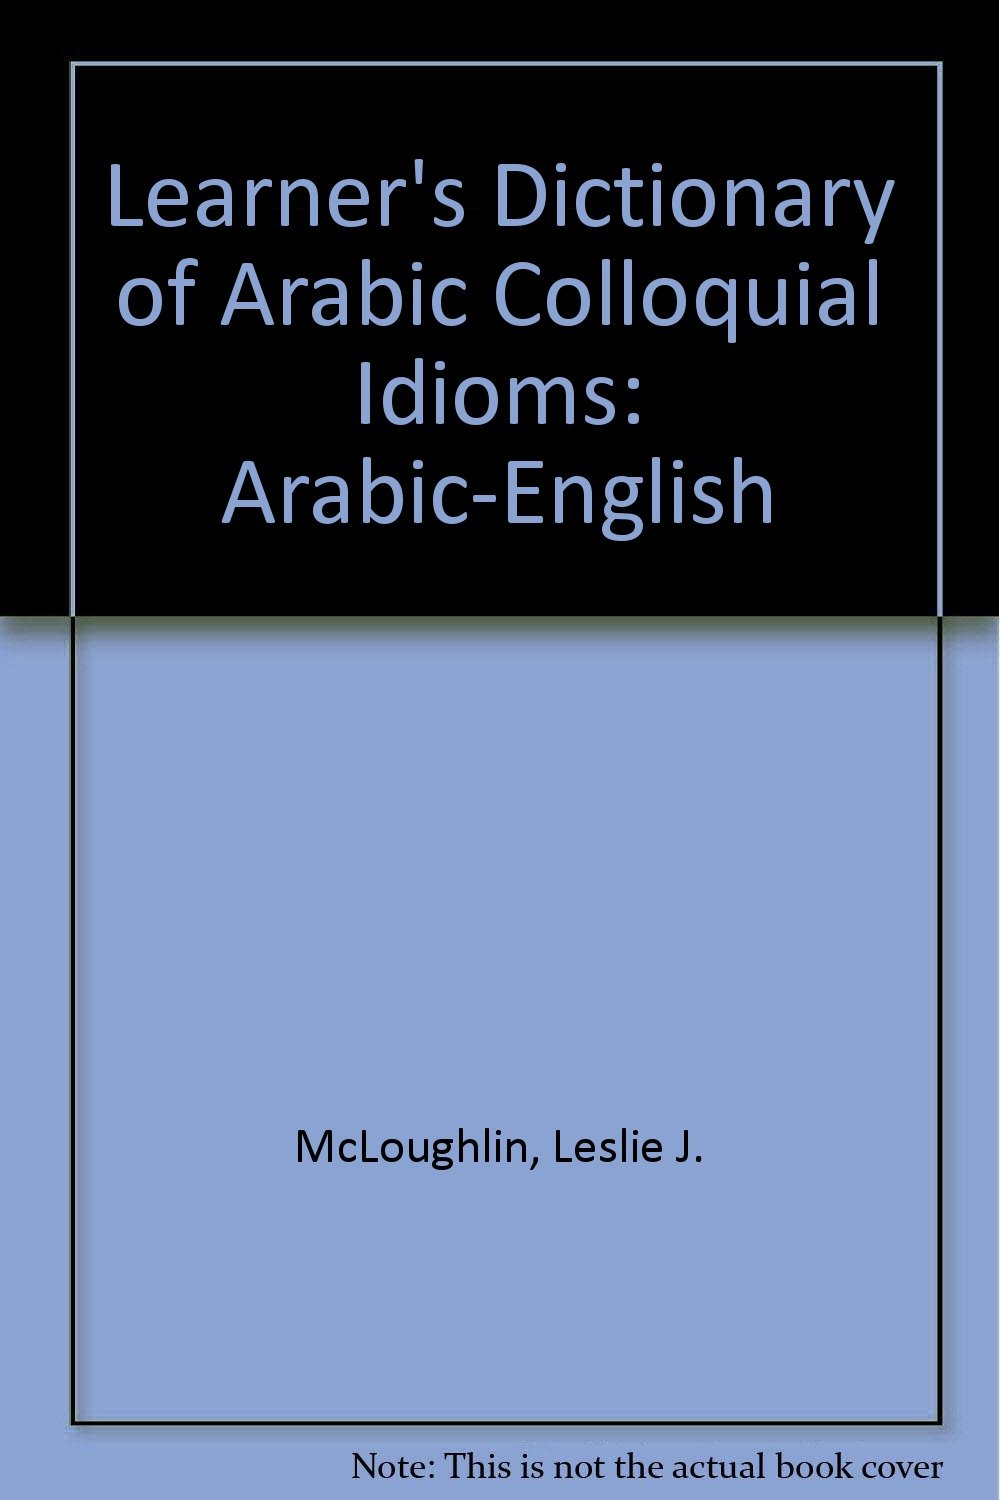 Learner's Dictionary of Arabic Colloquial Idioms: Arabic